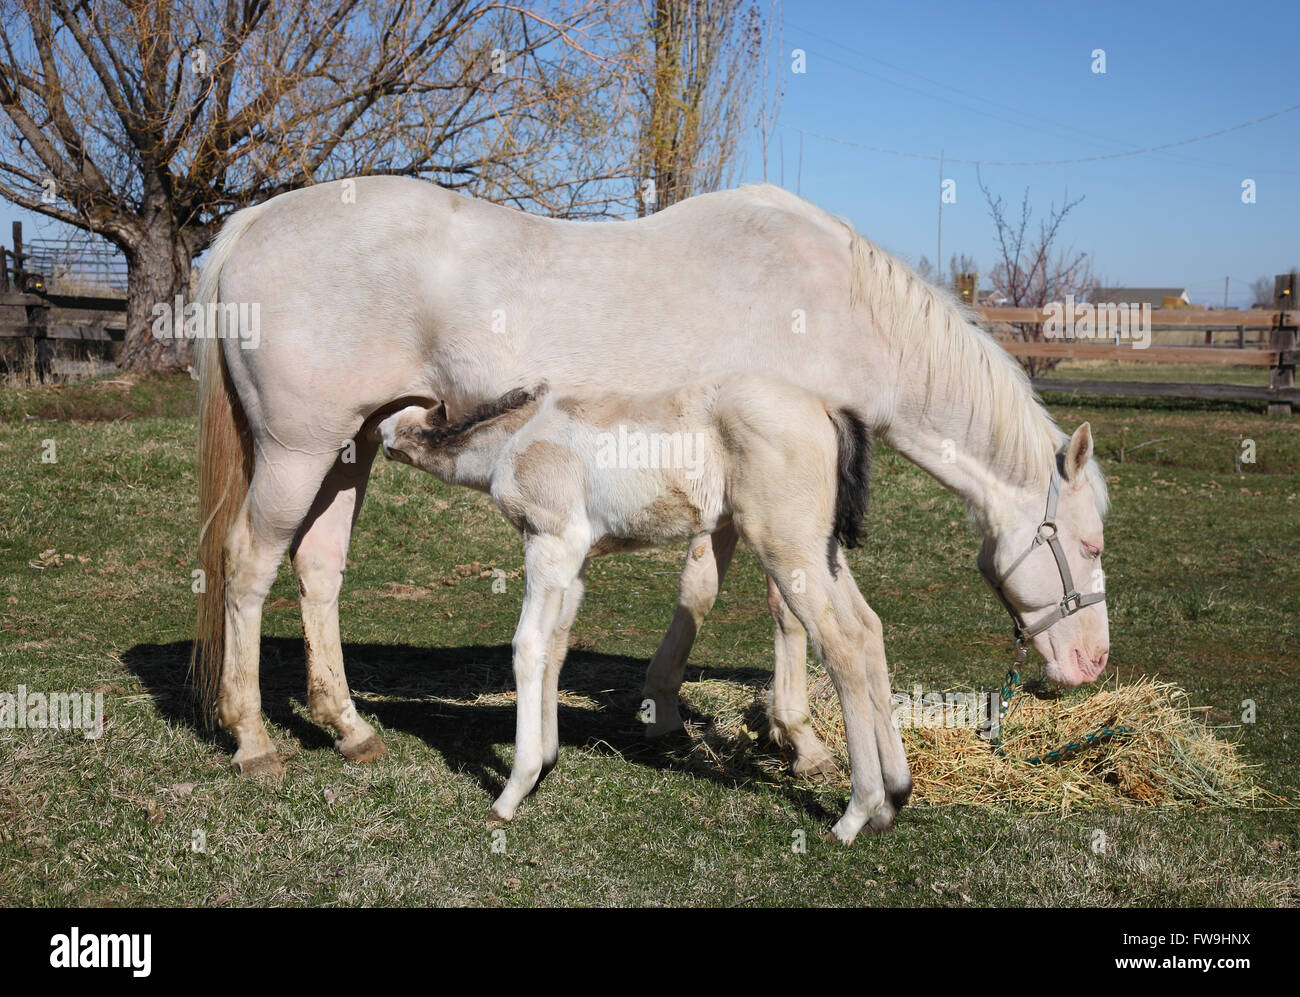 White And Tan Baby Horse Feeding From Mother Full Length Stock Photo Alamy